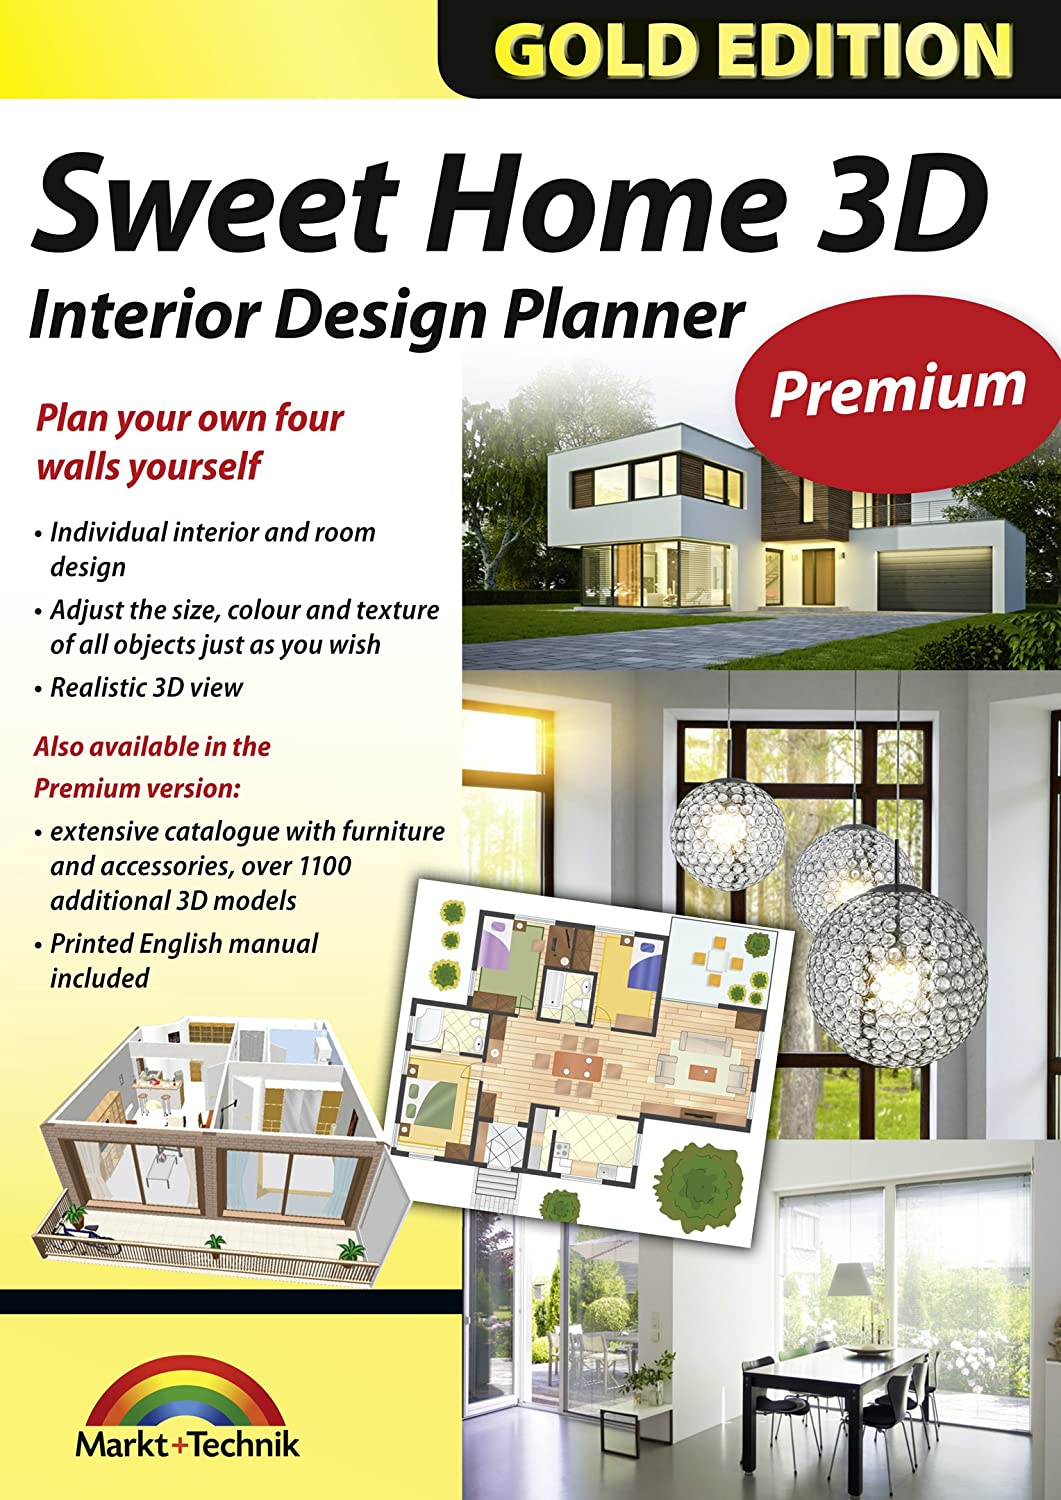 Interior Design Planner With An Additional 1100 3D Models And A Printed Manual Ideal For Architects Planners